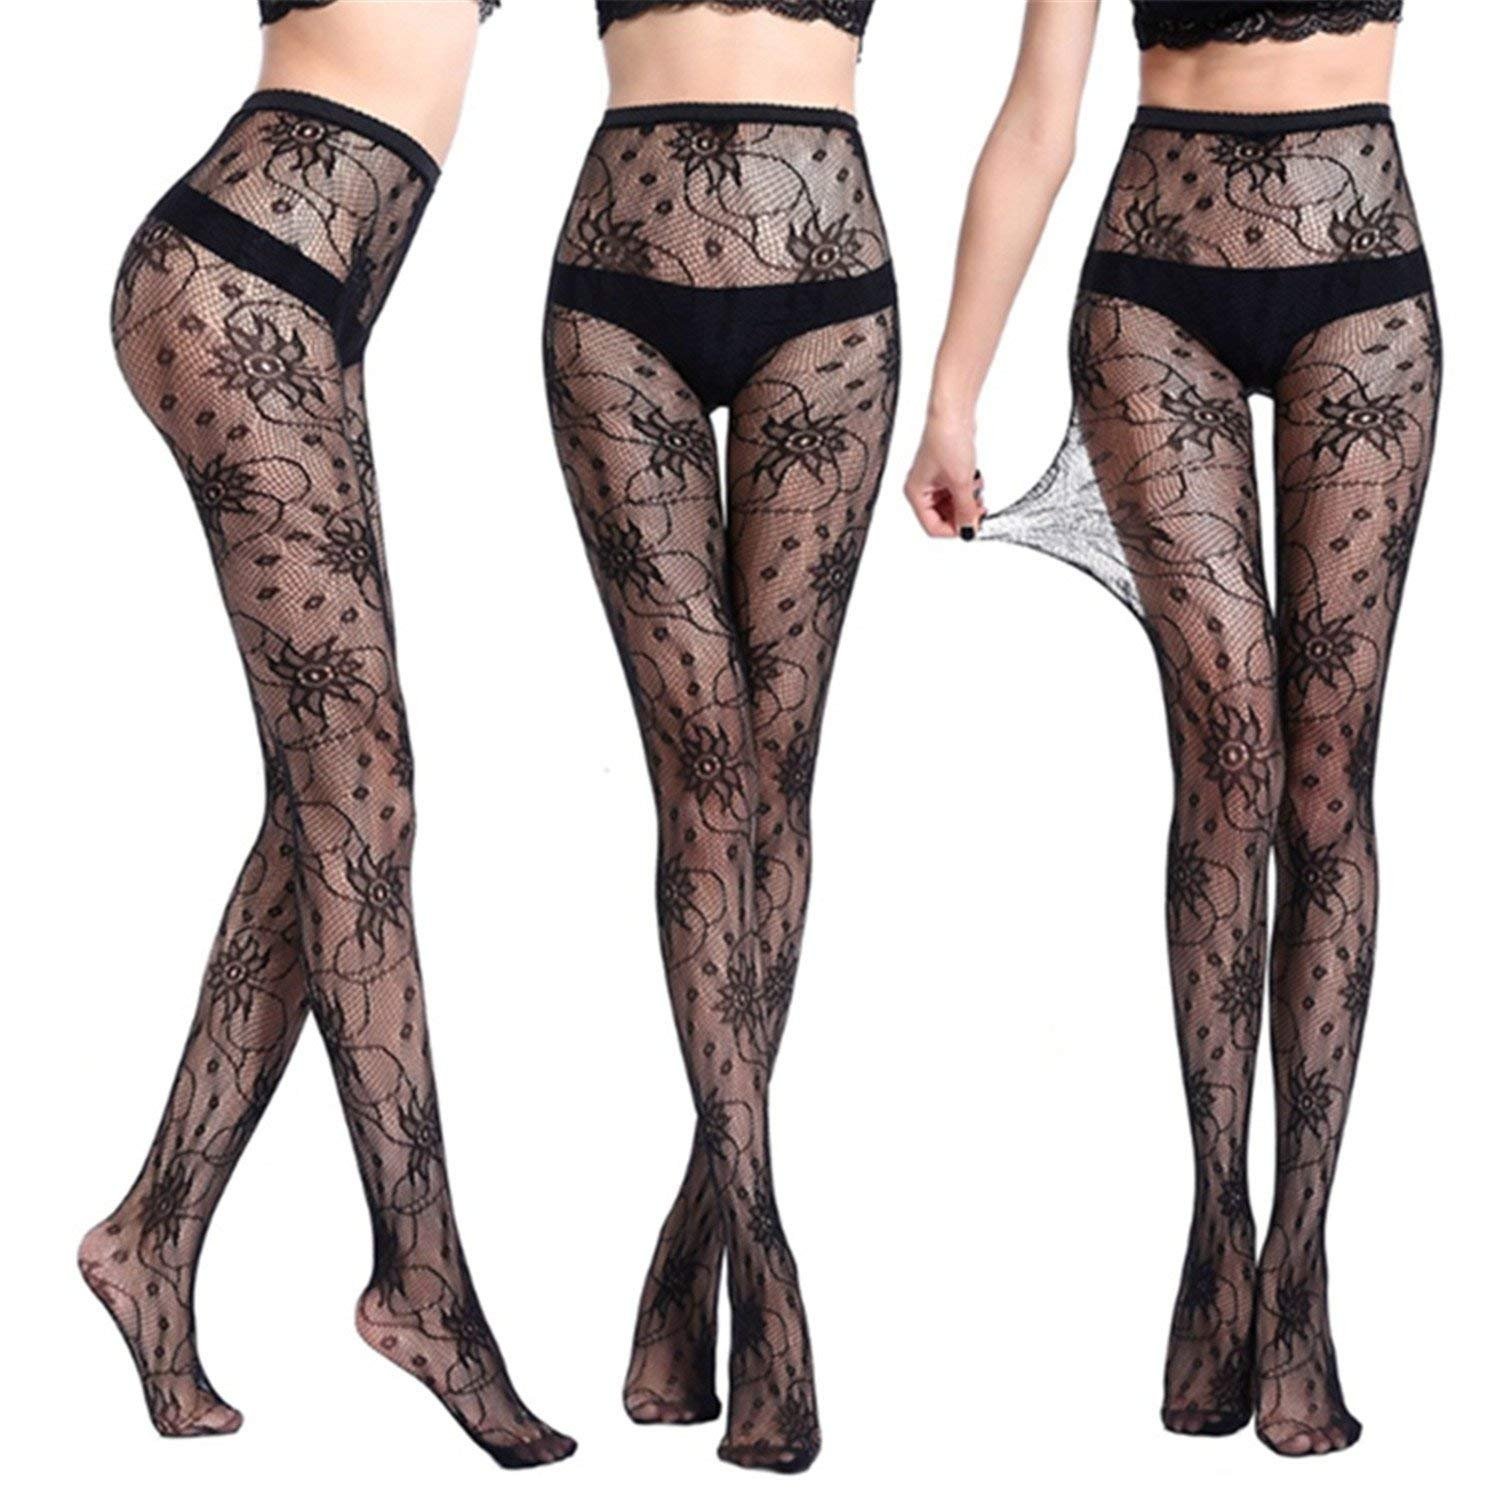 978b93d818b Get Quotations · Soto6ro Sexy Women Tights Skinny Legs Pantyhose Elastic  Magical Stockings Prevent Hook Silk Stocking Black